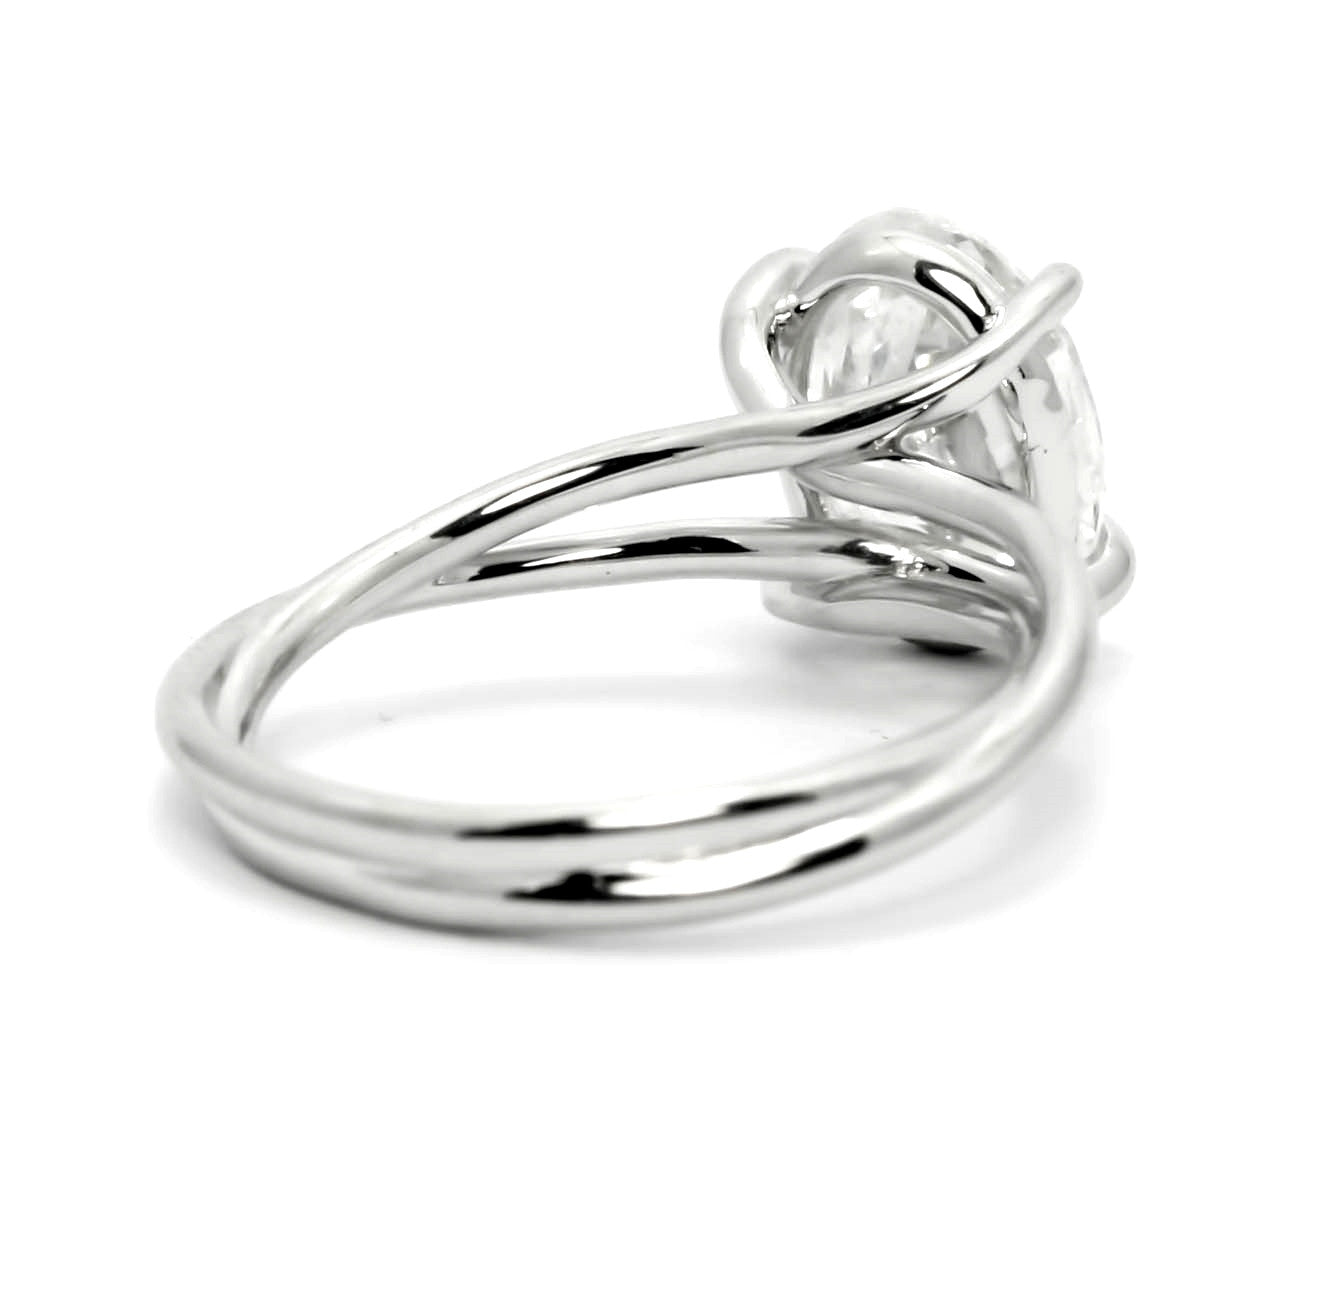 Unique 1.5 Carat Oval Forever One Moissanite Engagement Ring Twisted Shank - OFBV0015